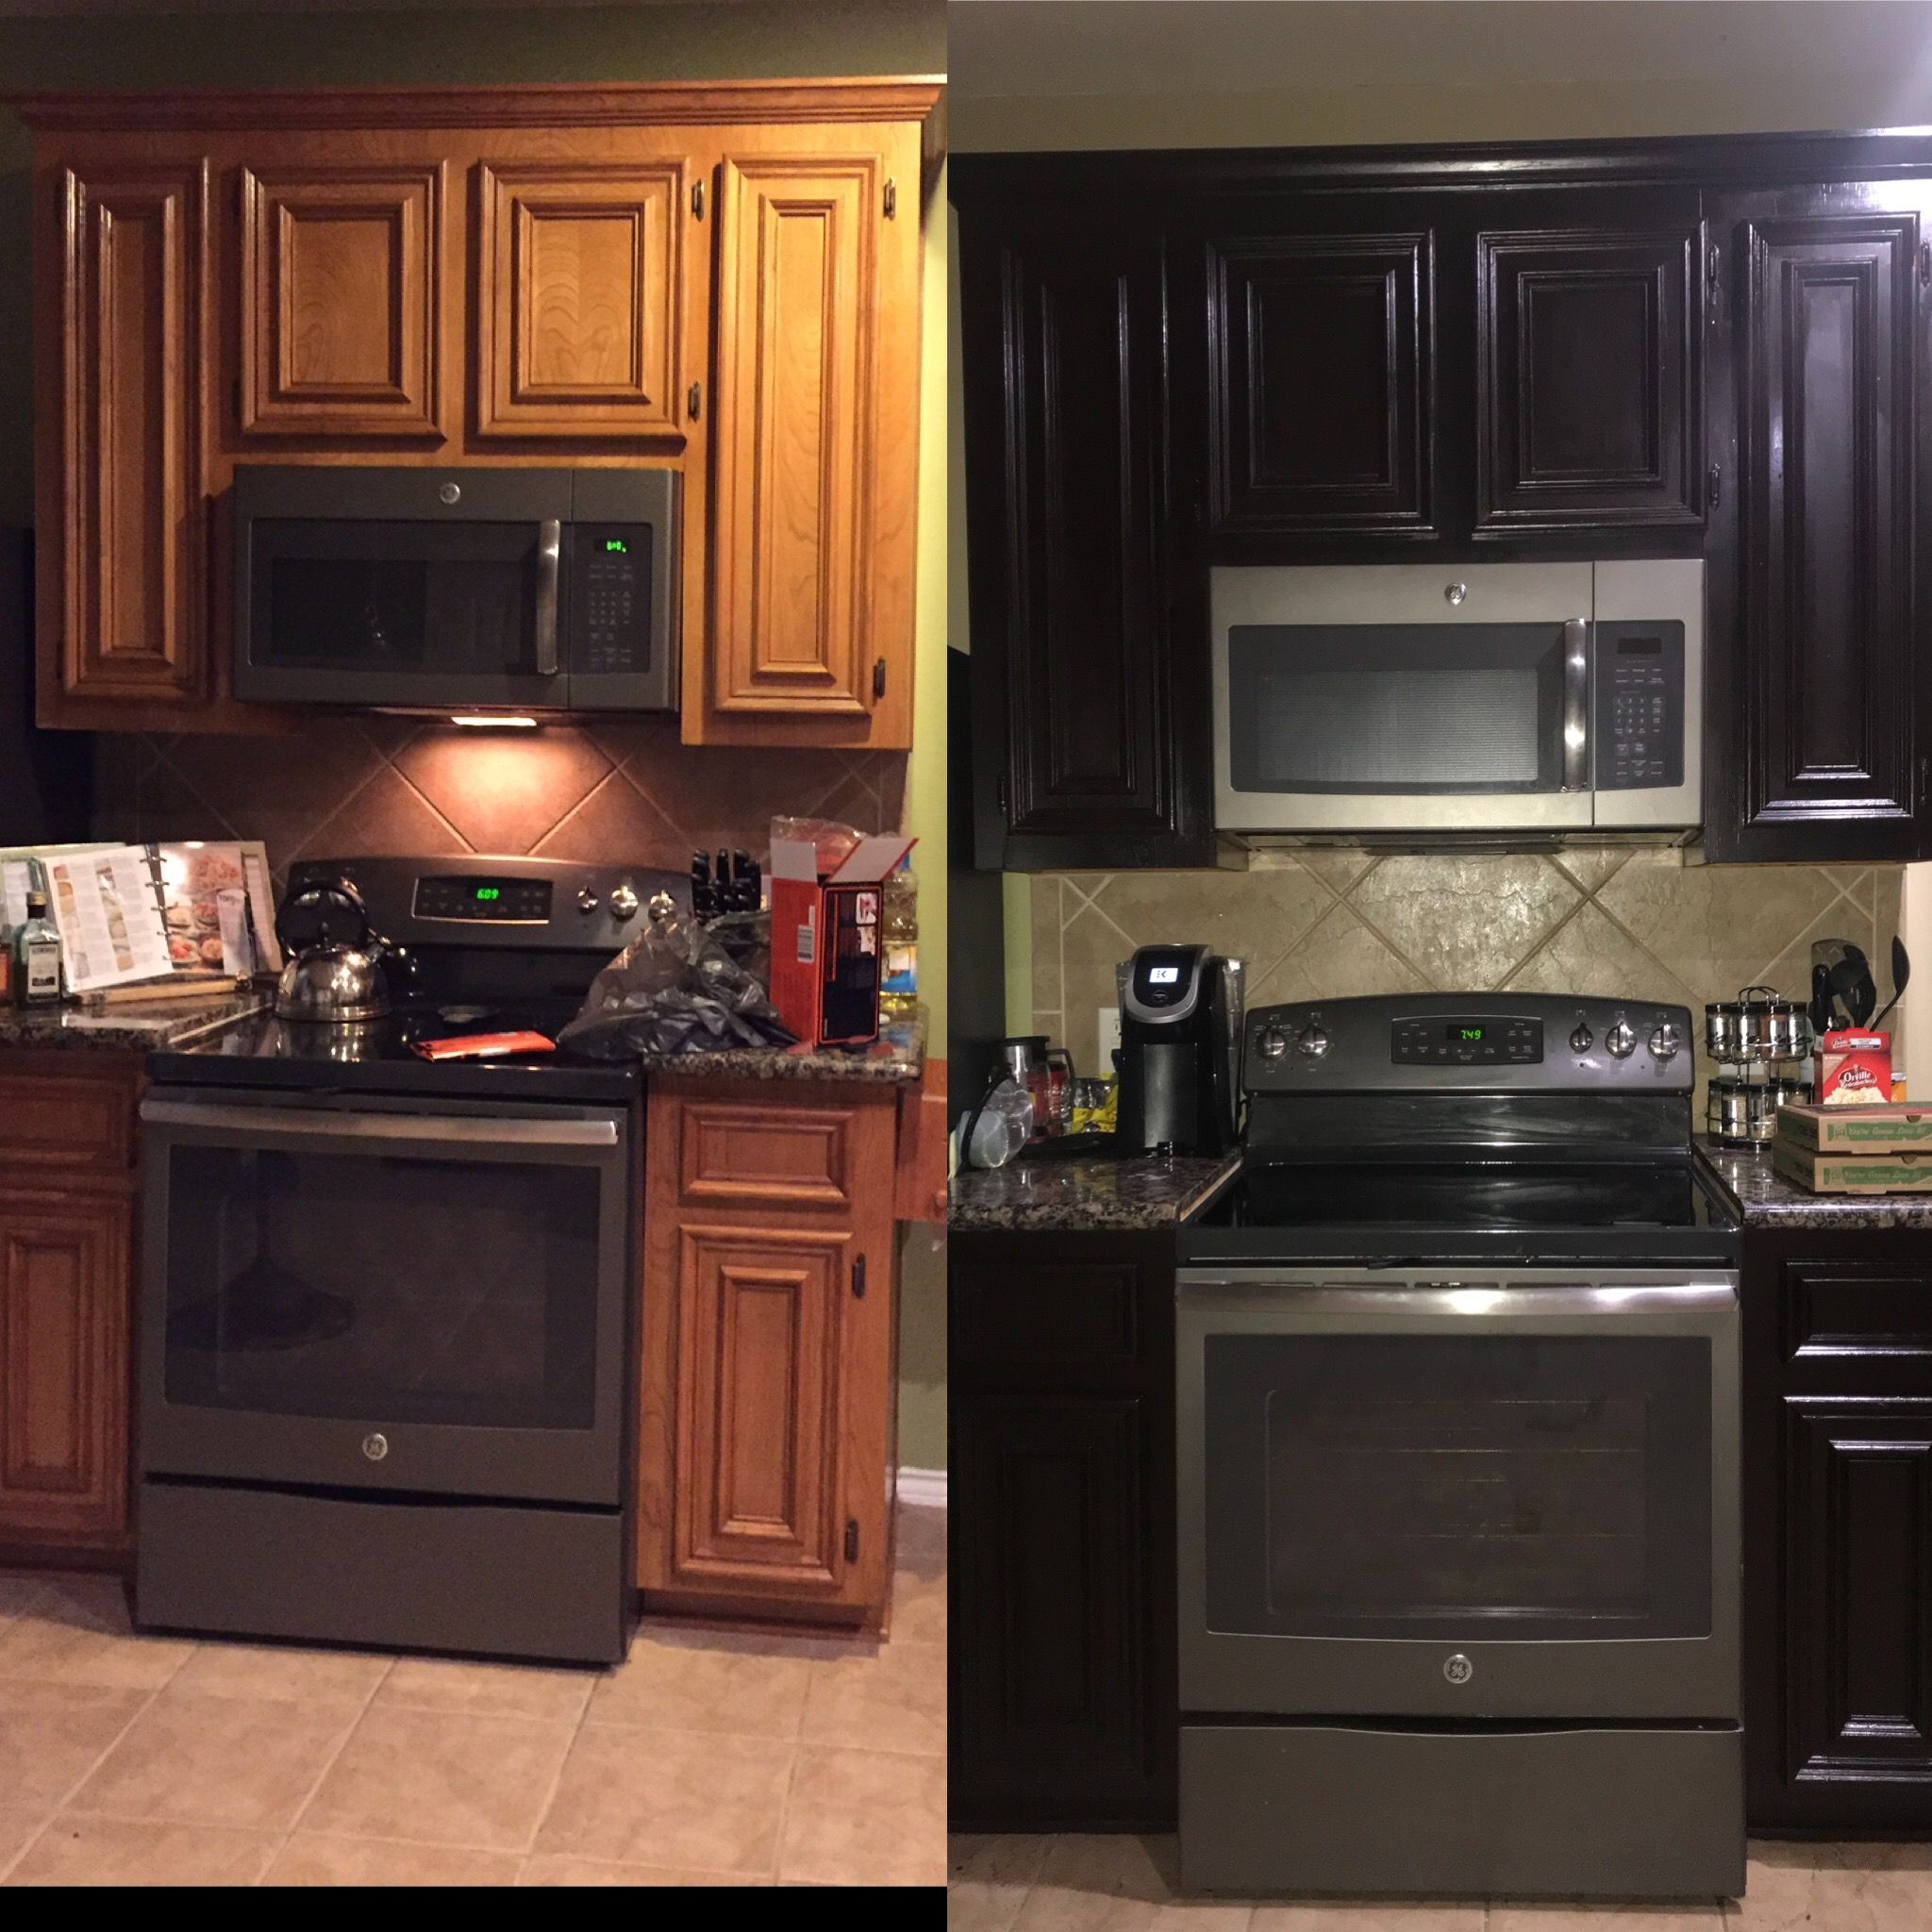 Before And After Using Gel Stain Only Needed One Coat And Done This Is Coffee Color From Minwax D Staining Cabinets Gel Staining Cabinets Kitchen Remodel